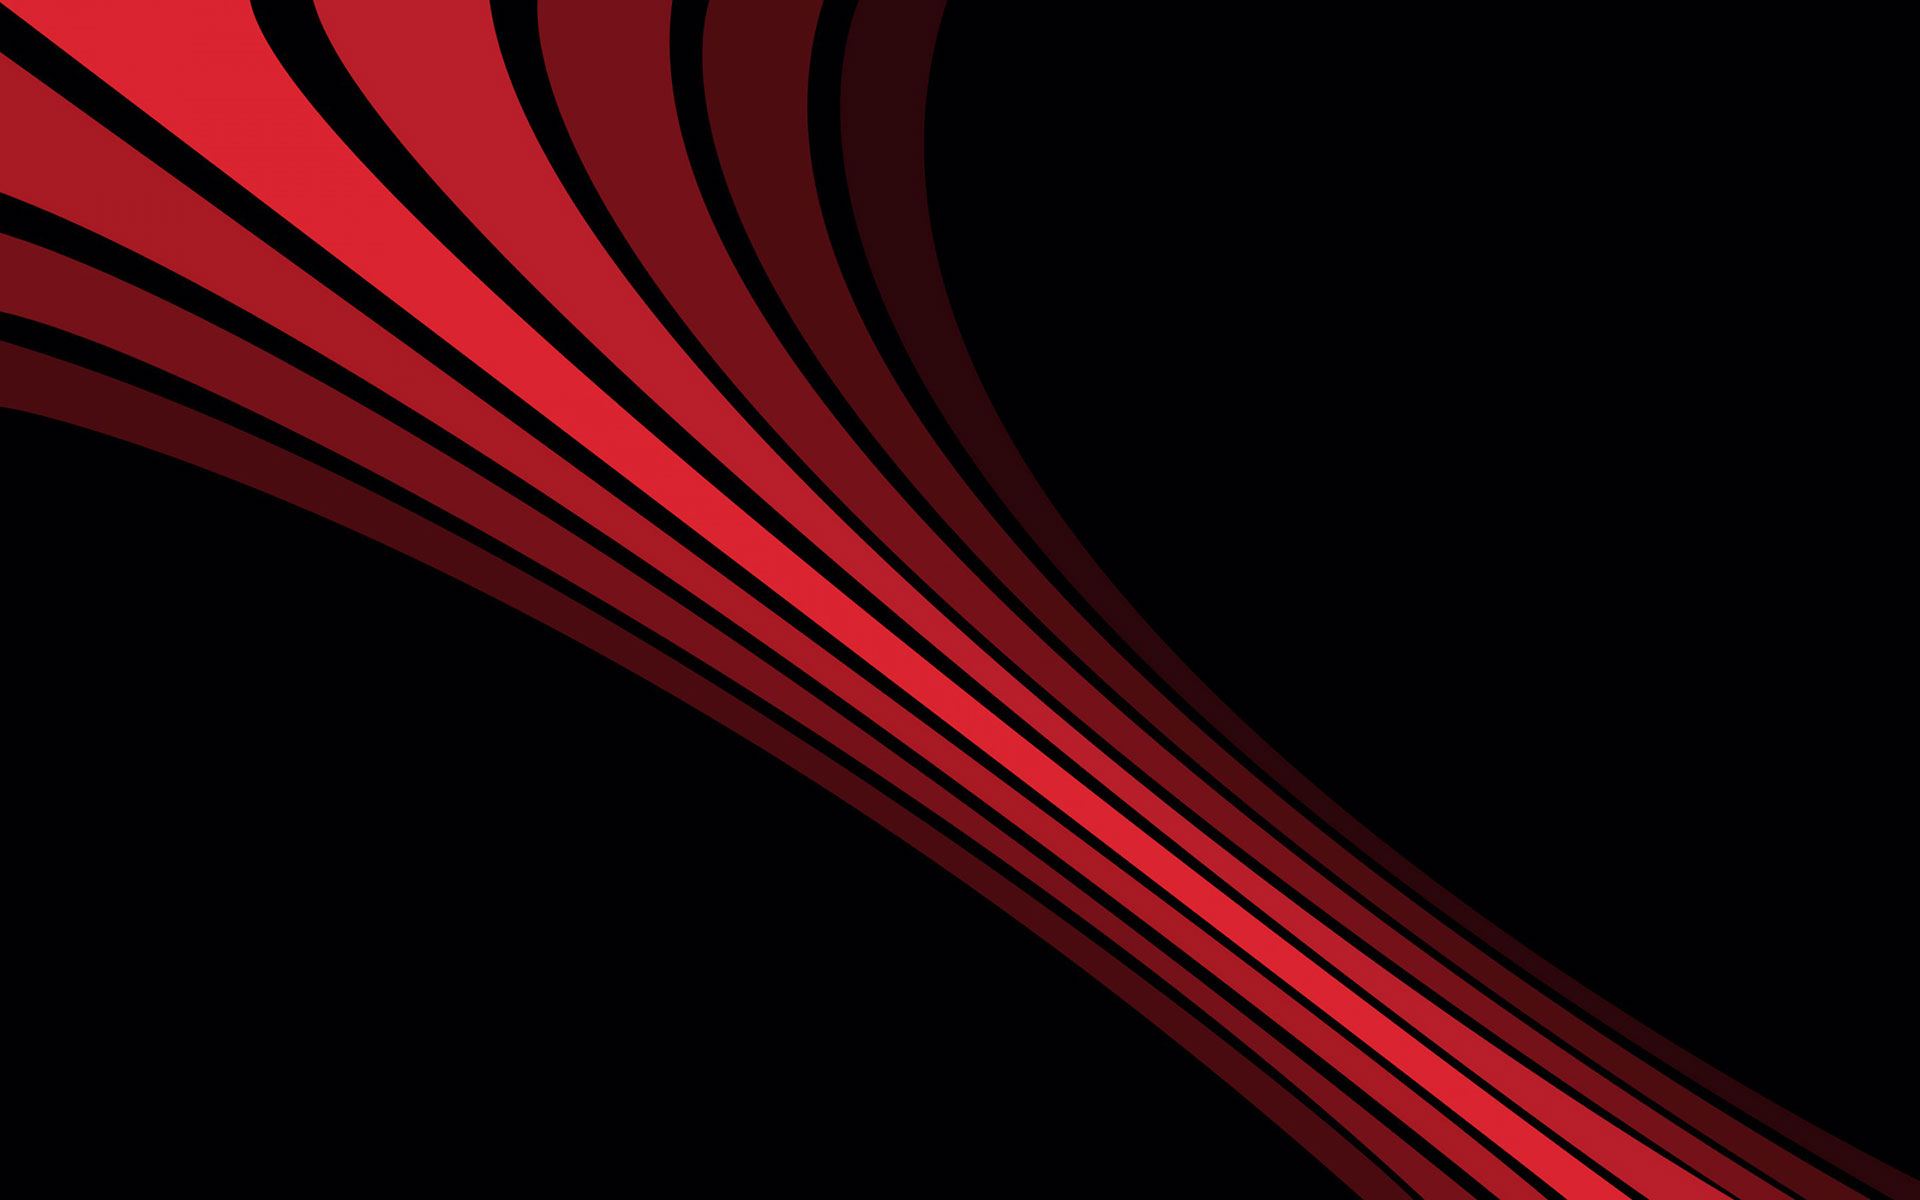 Red Wallpaper 1